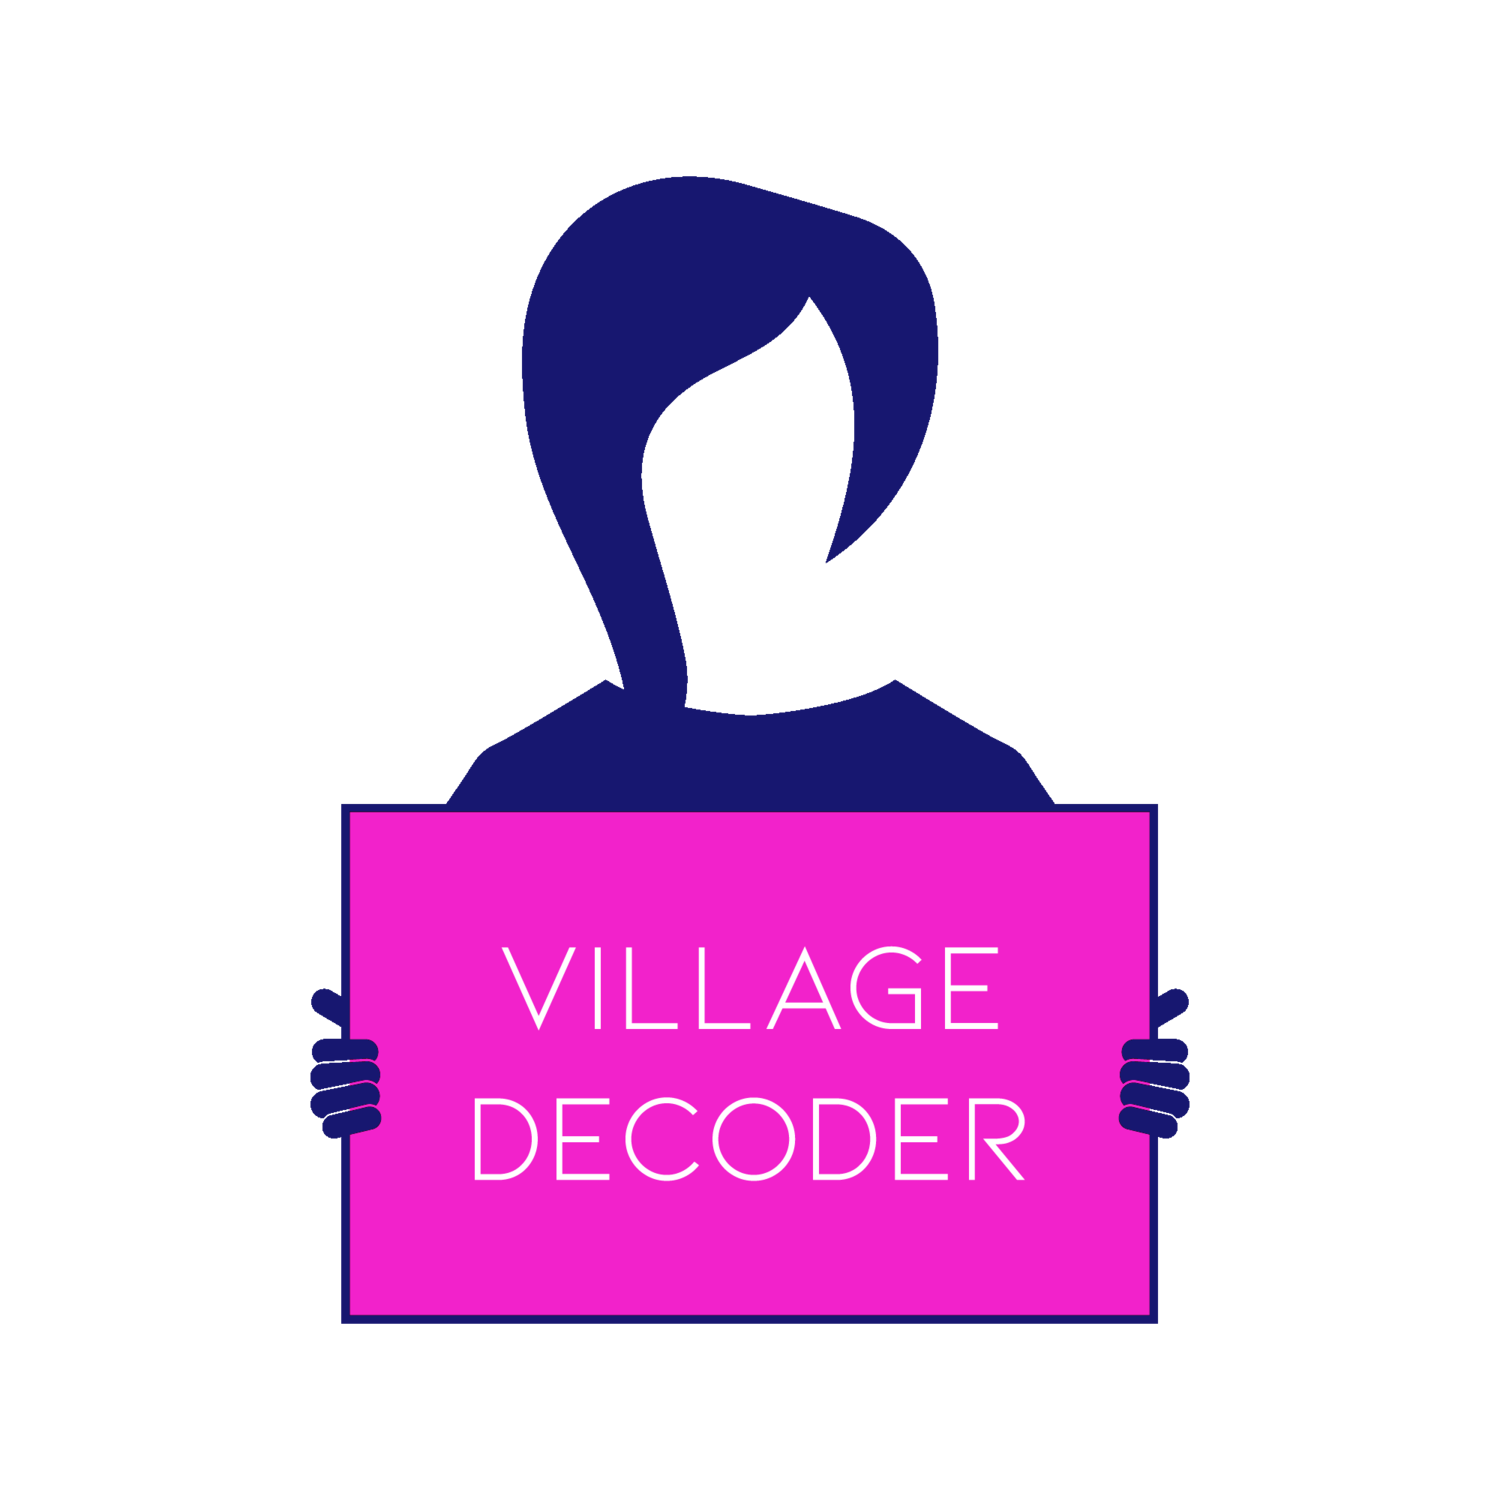 The Village Decoder